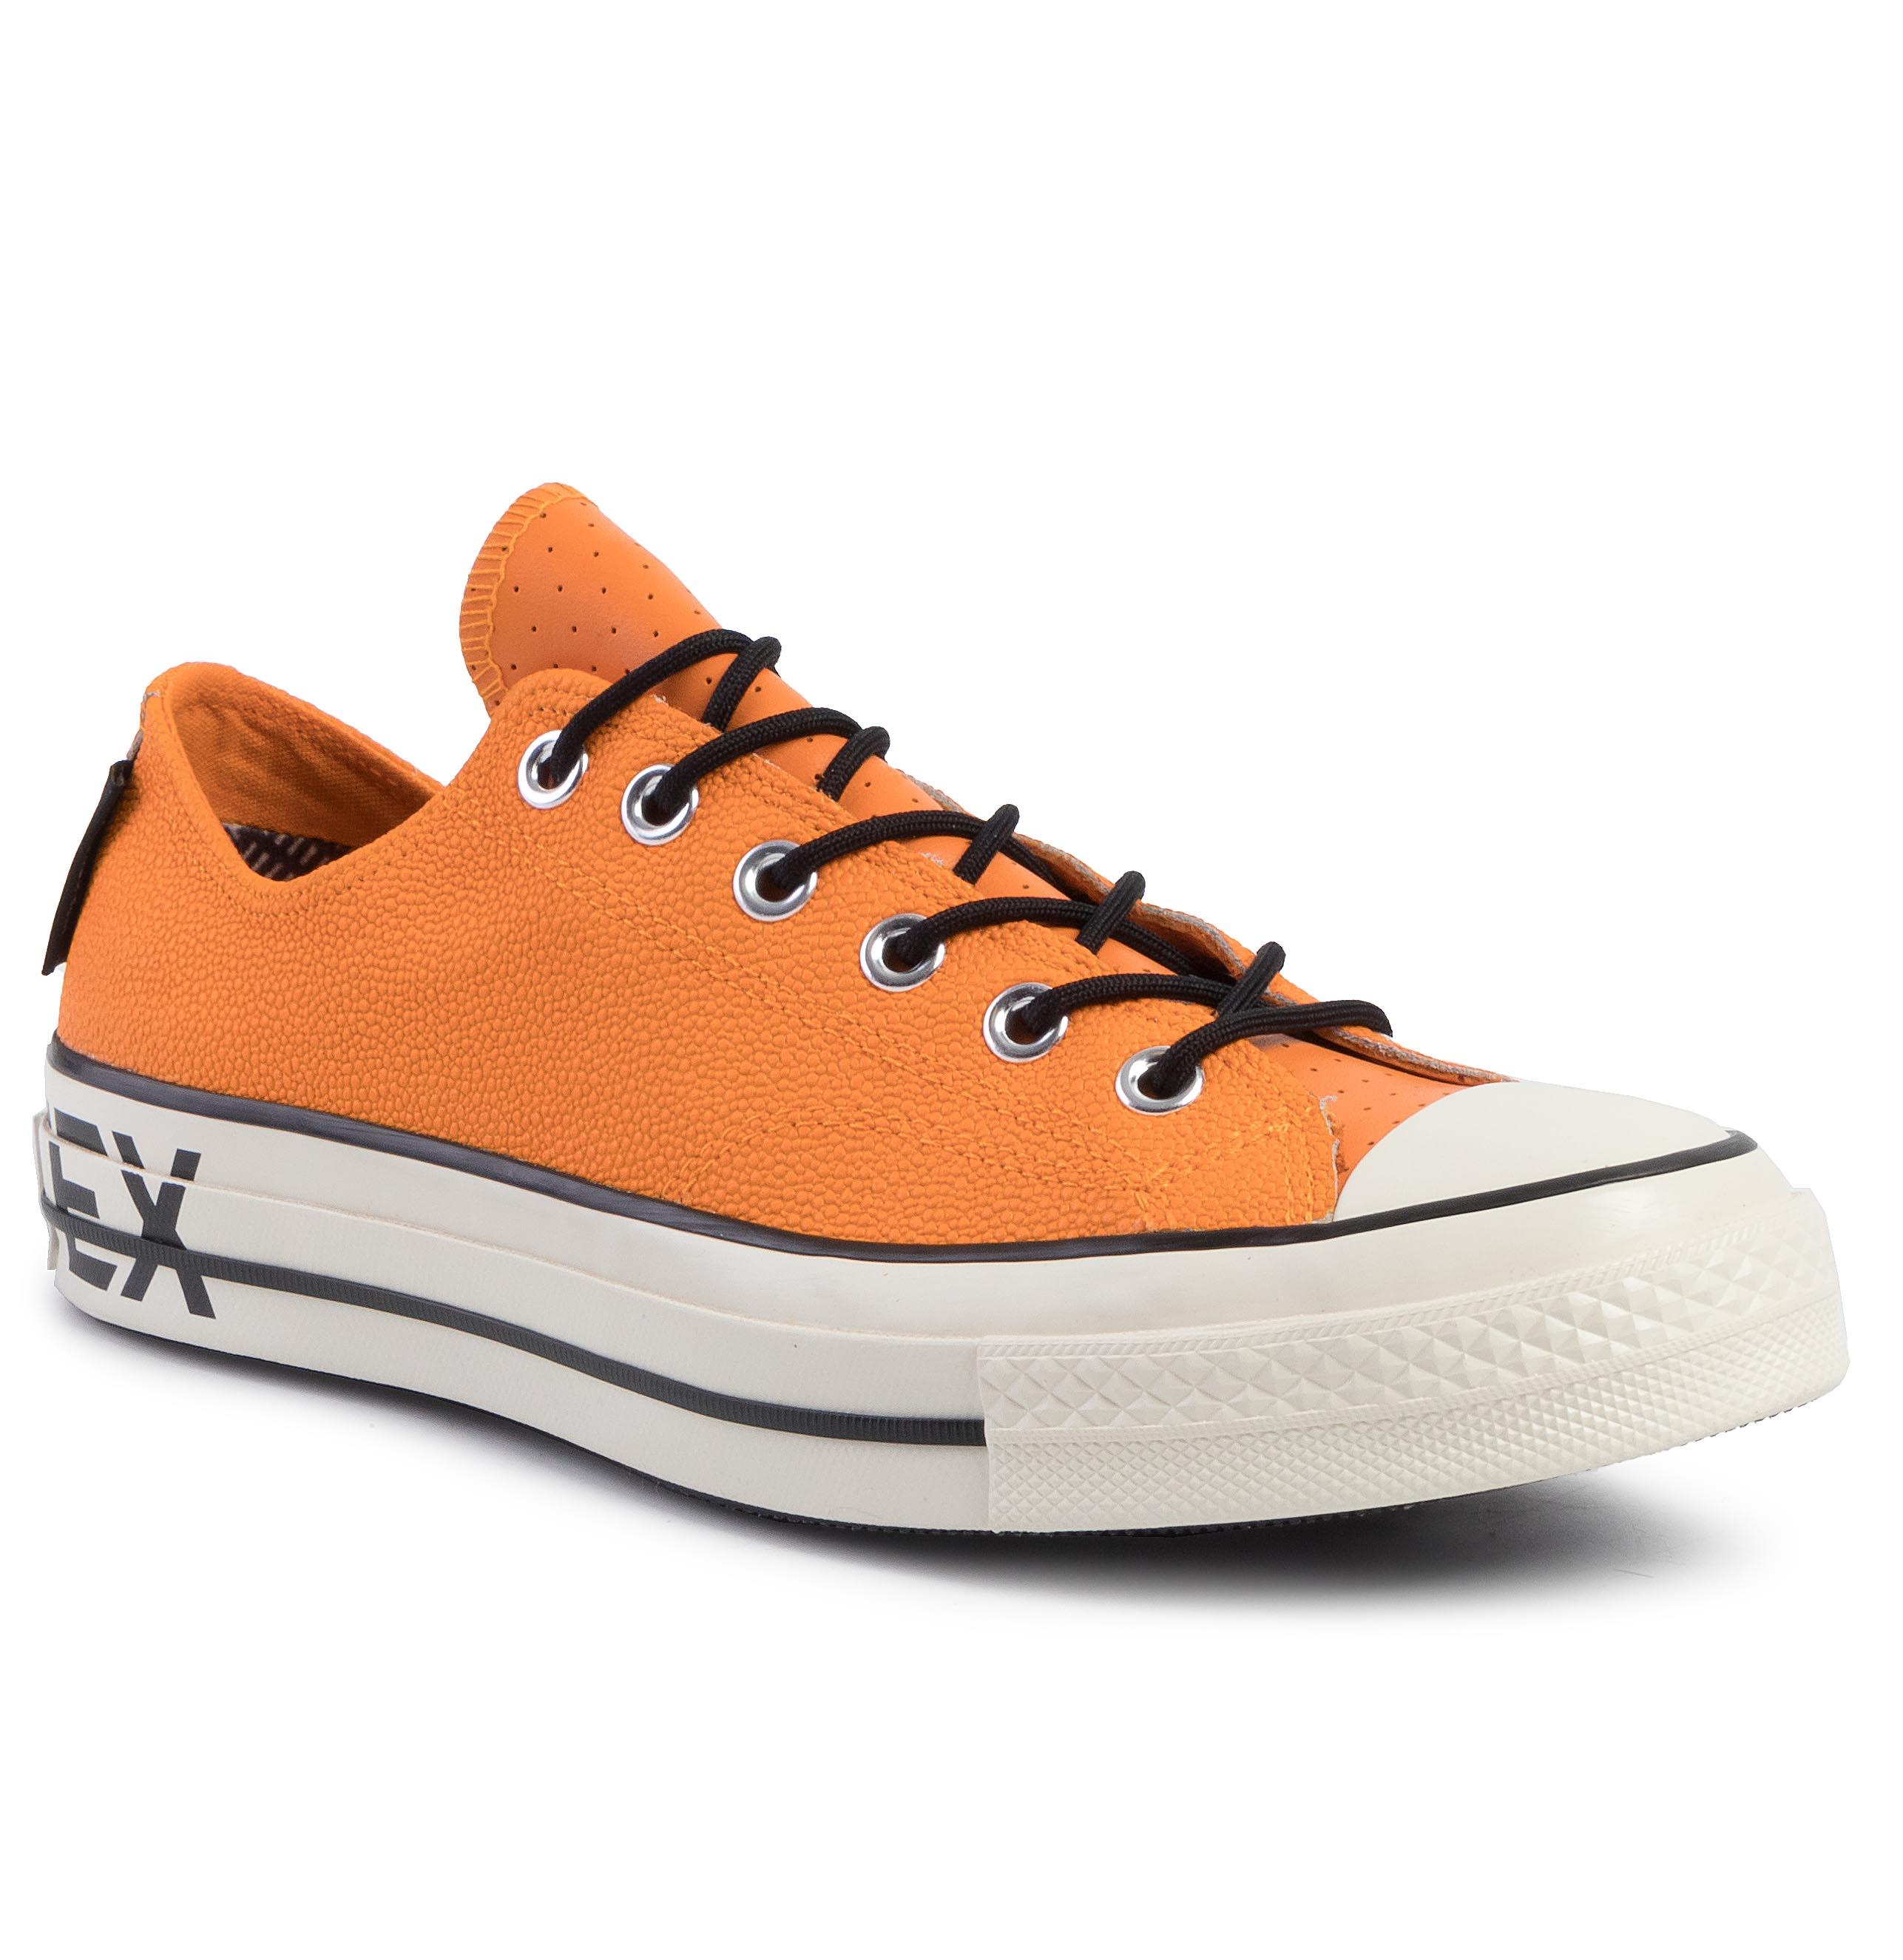 Teniși Converse - Chuck 70 Ox Gore-Tex 163228c Orange Rind/Black/Egret imagine epantofi.ro 2021